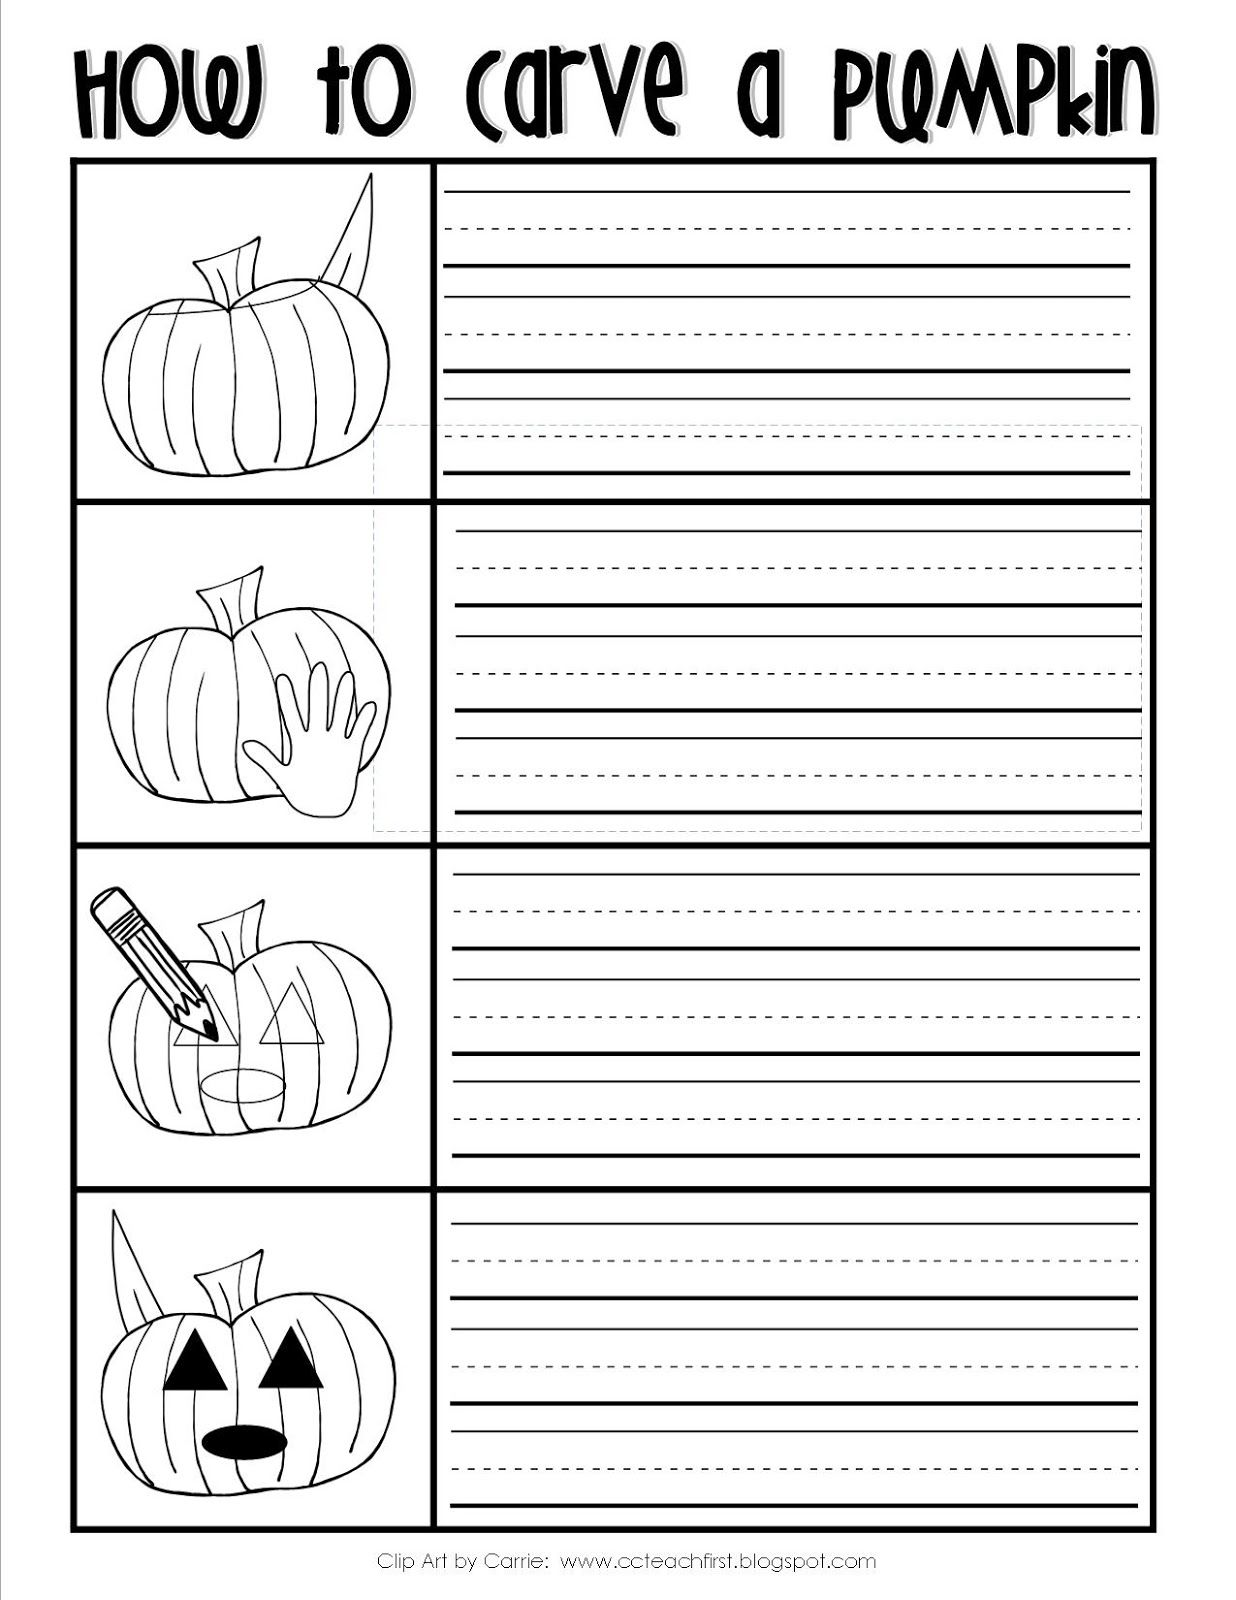 How to Carve a Pumpkin Writing Sheet FREEBIE by C&C Teach First: www ...